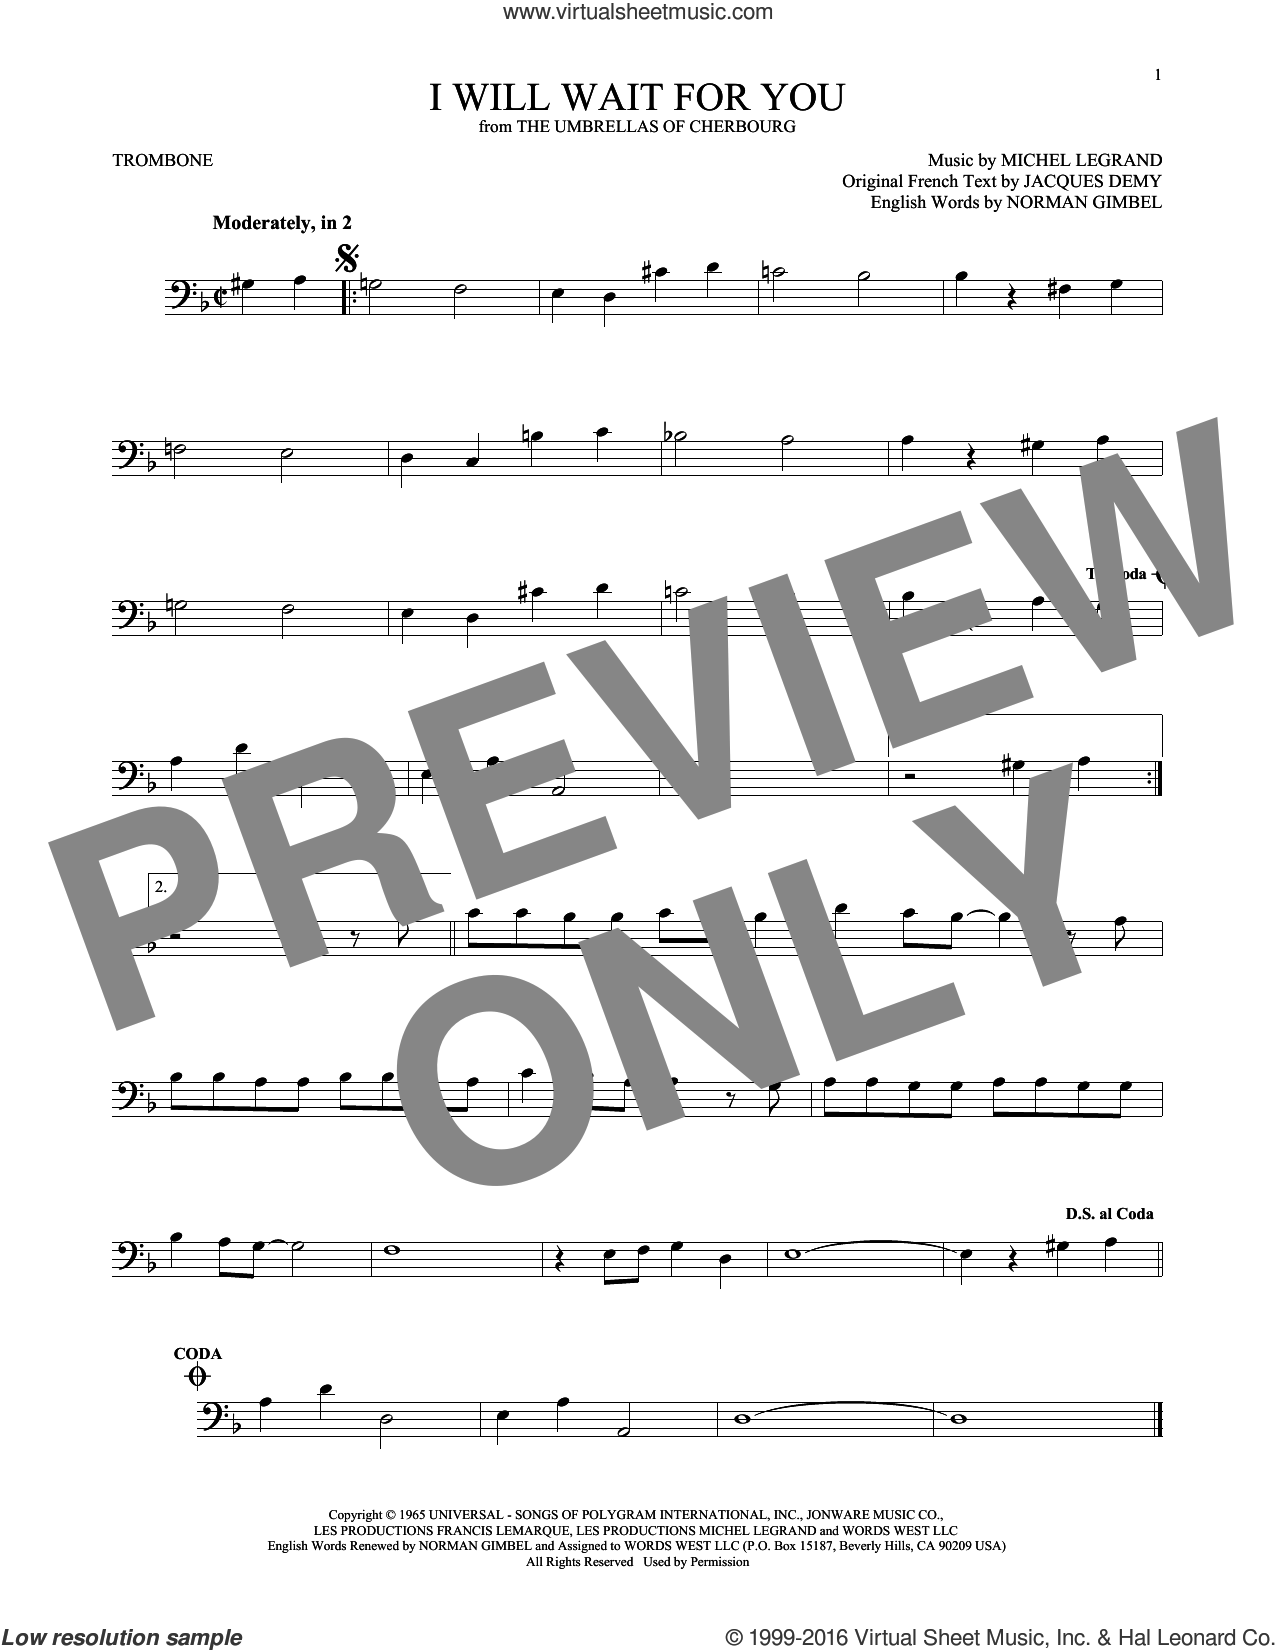 I Will Wait For You sheet music for trombone solo by Michel Legrand, Jacques Demy and Norman Gimbel, intermediate. Score Image Preview.